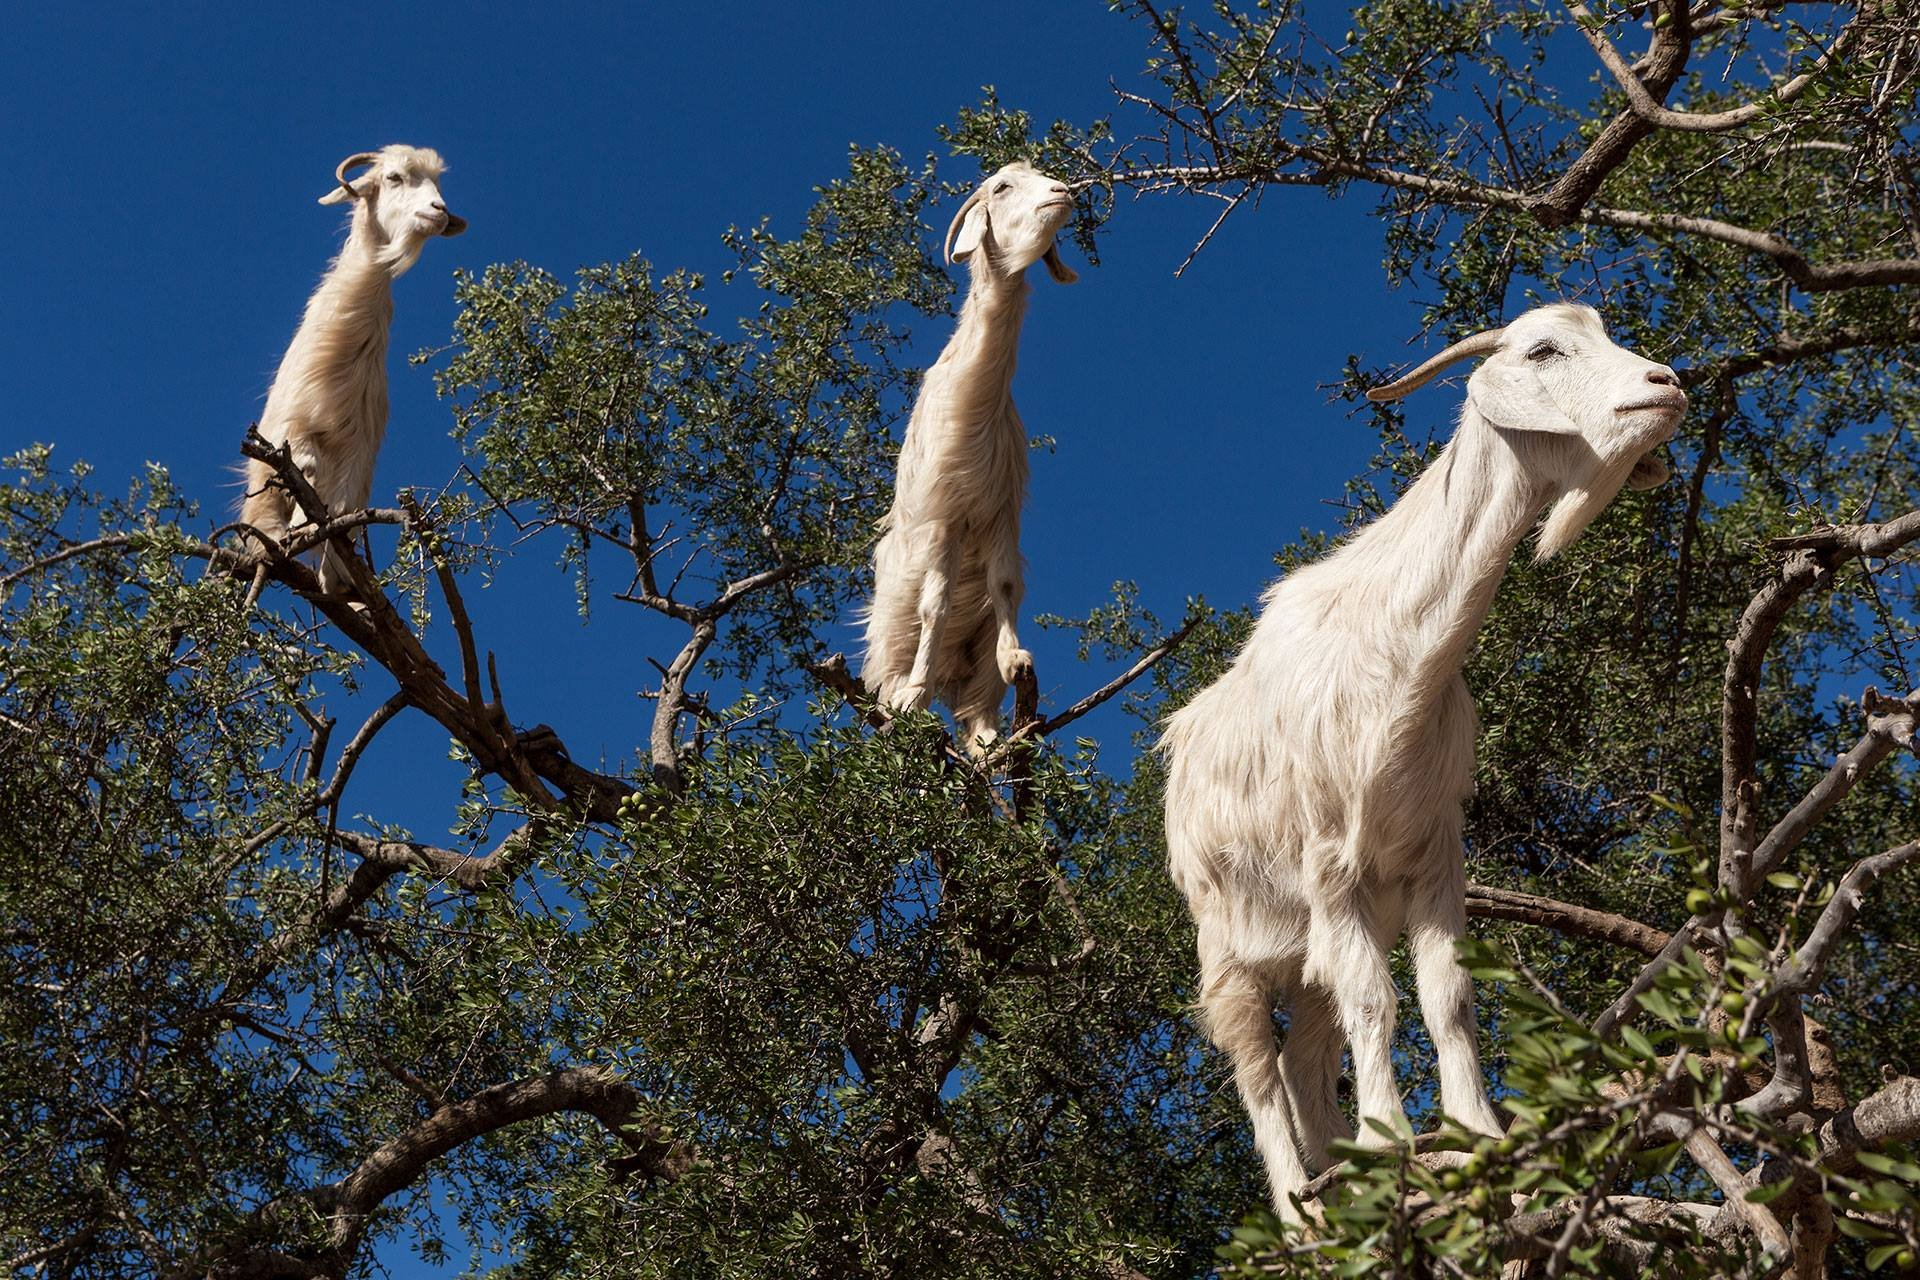 Goats of Souss Valley in Morocco - Best Season 2020